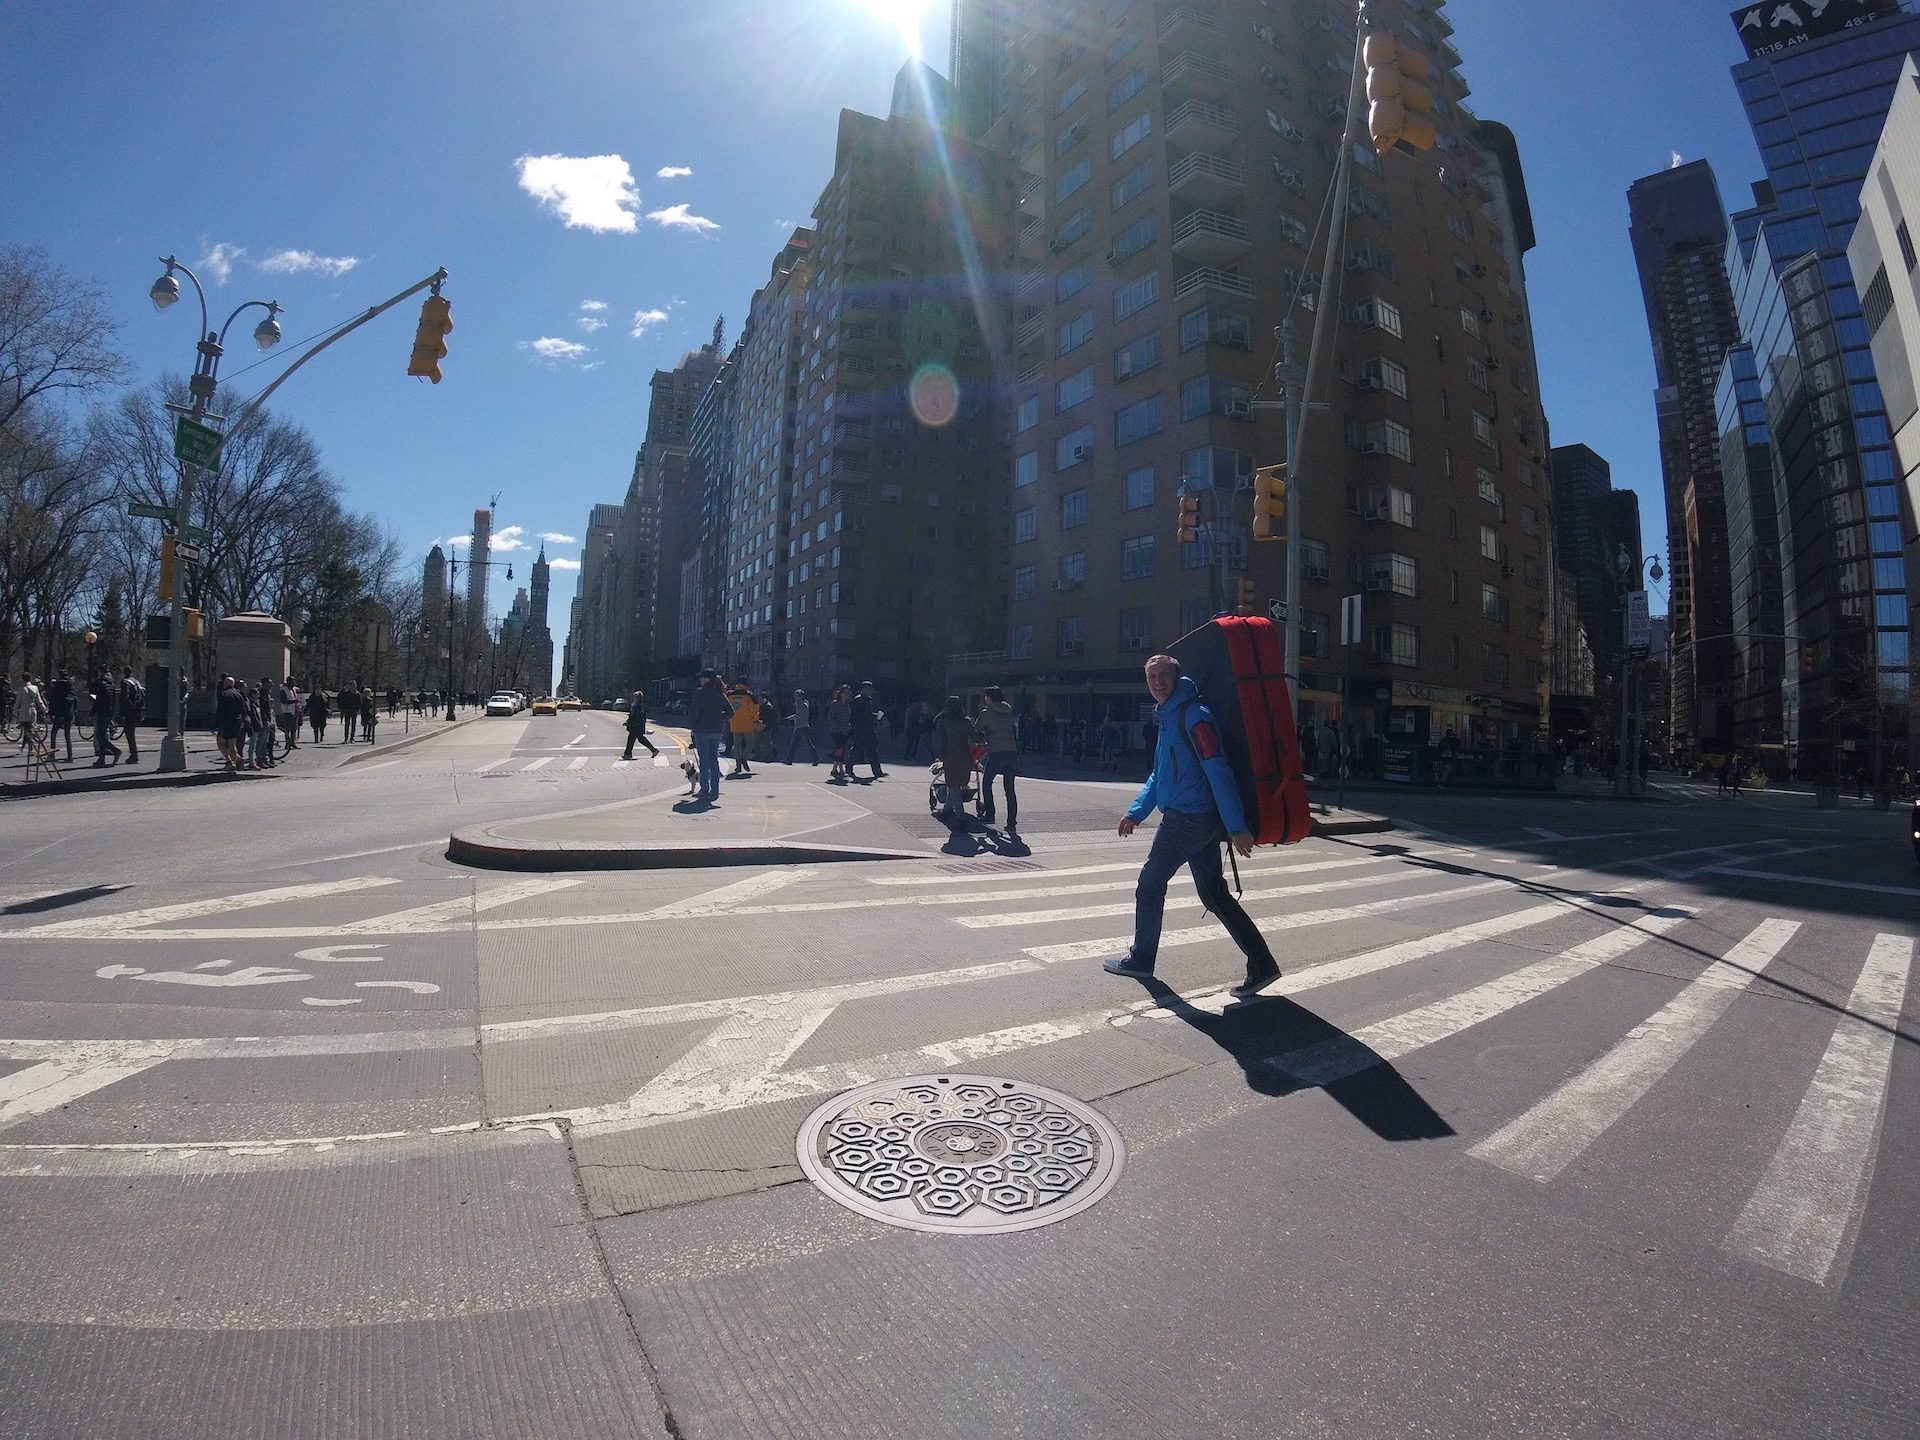 On the way to Central Park.